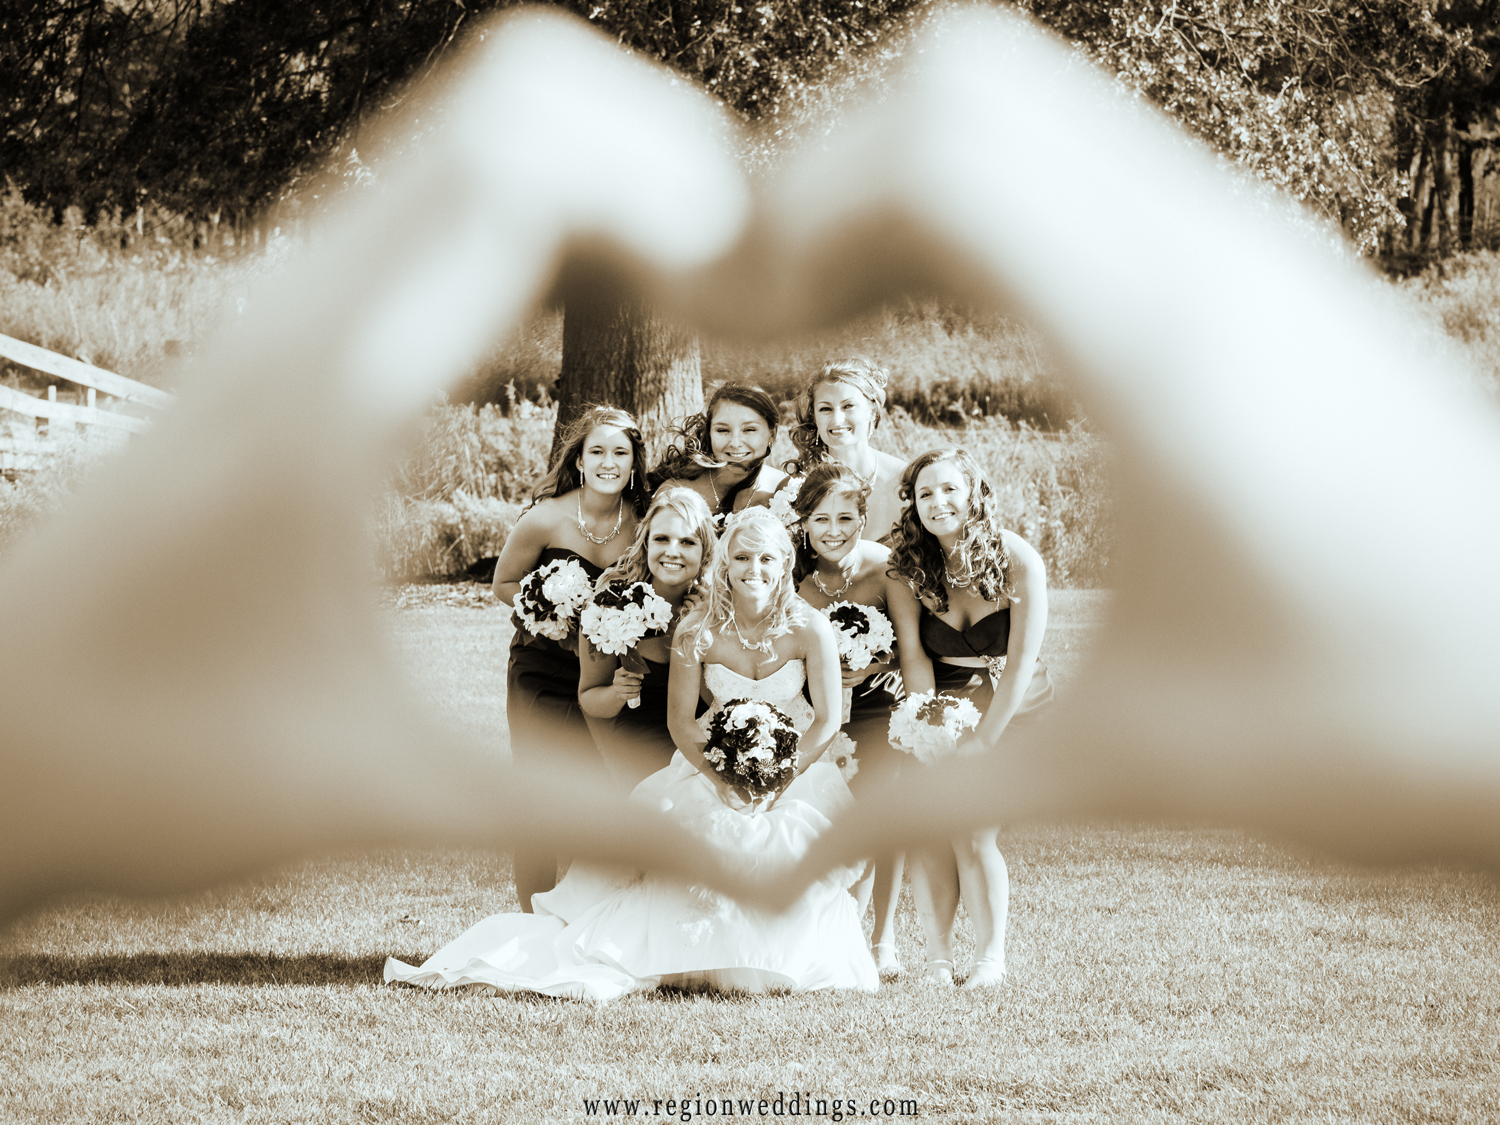 The bridesmaids huddle up together within a heart.